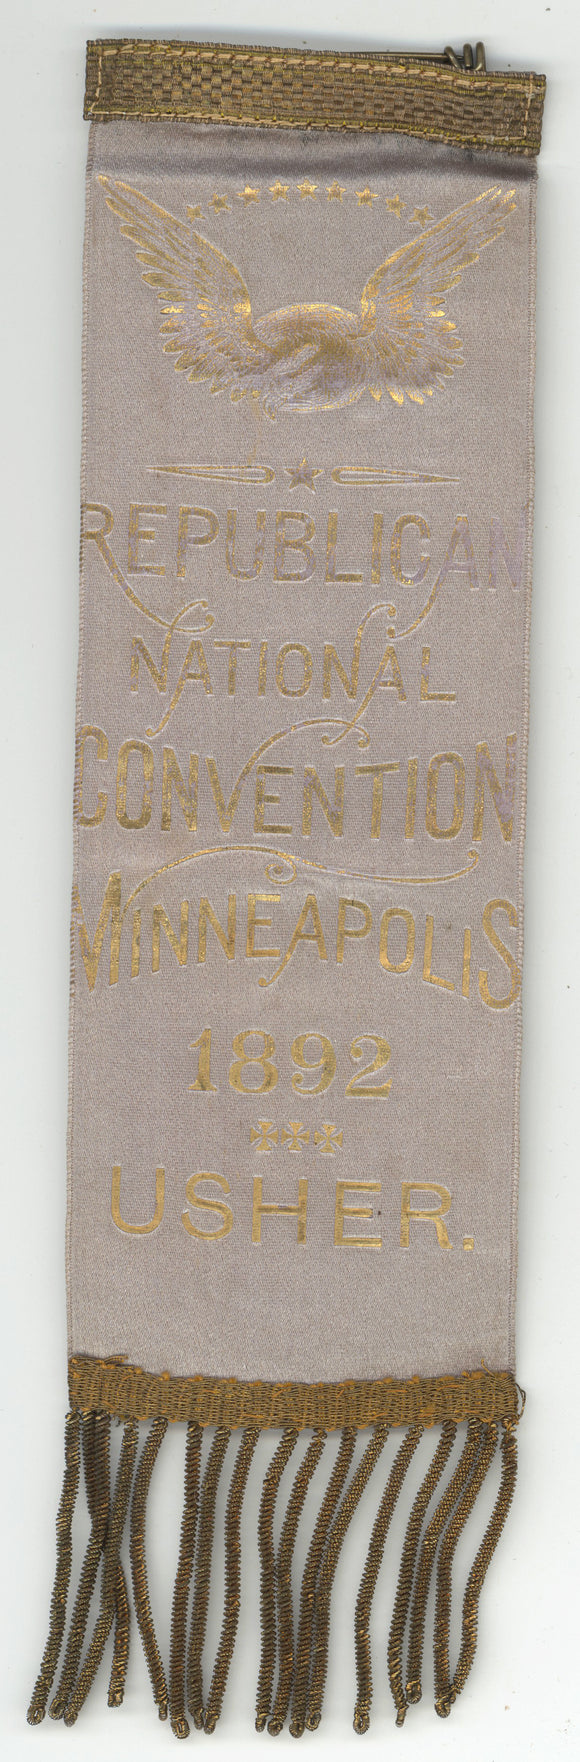 REPUBLICAN NATIONAL CONVENTION MINNEAPOLIS 1892  USHER.